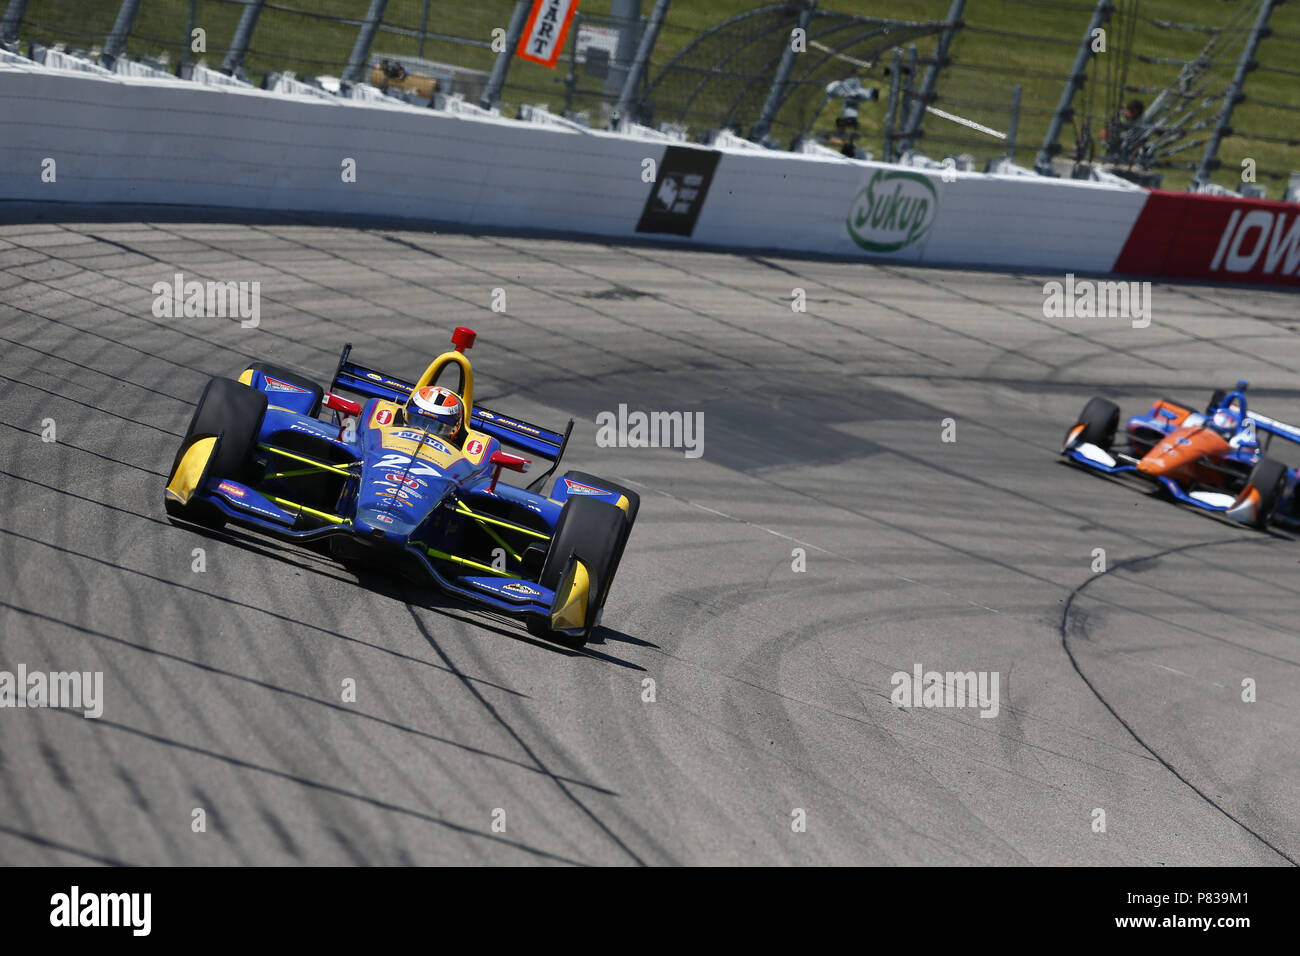 Newton, Iowa, USA. 8th July, 2018. ALEXANDER ROSSI (27) of the United States battles for position during the Iowa Corn 300 at Iowa Speedway in Newton, Iowa. Credit: Justin R. Noe Asp Inc/ASP/ZUMA Wire/Alamy Live News - Stock Image